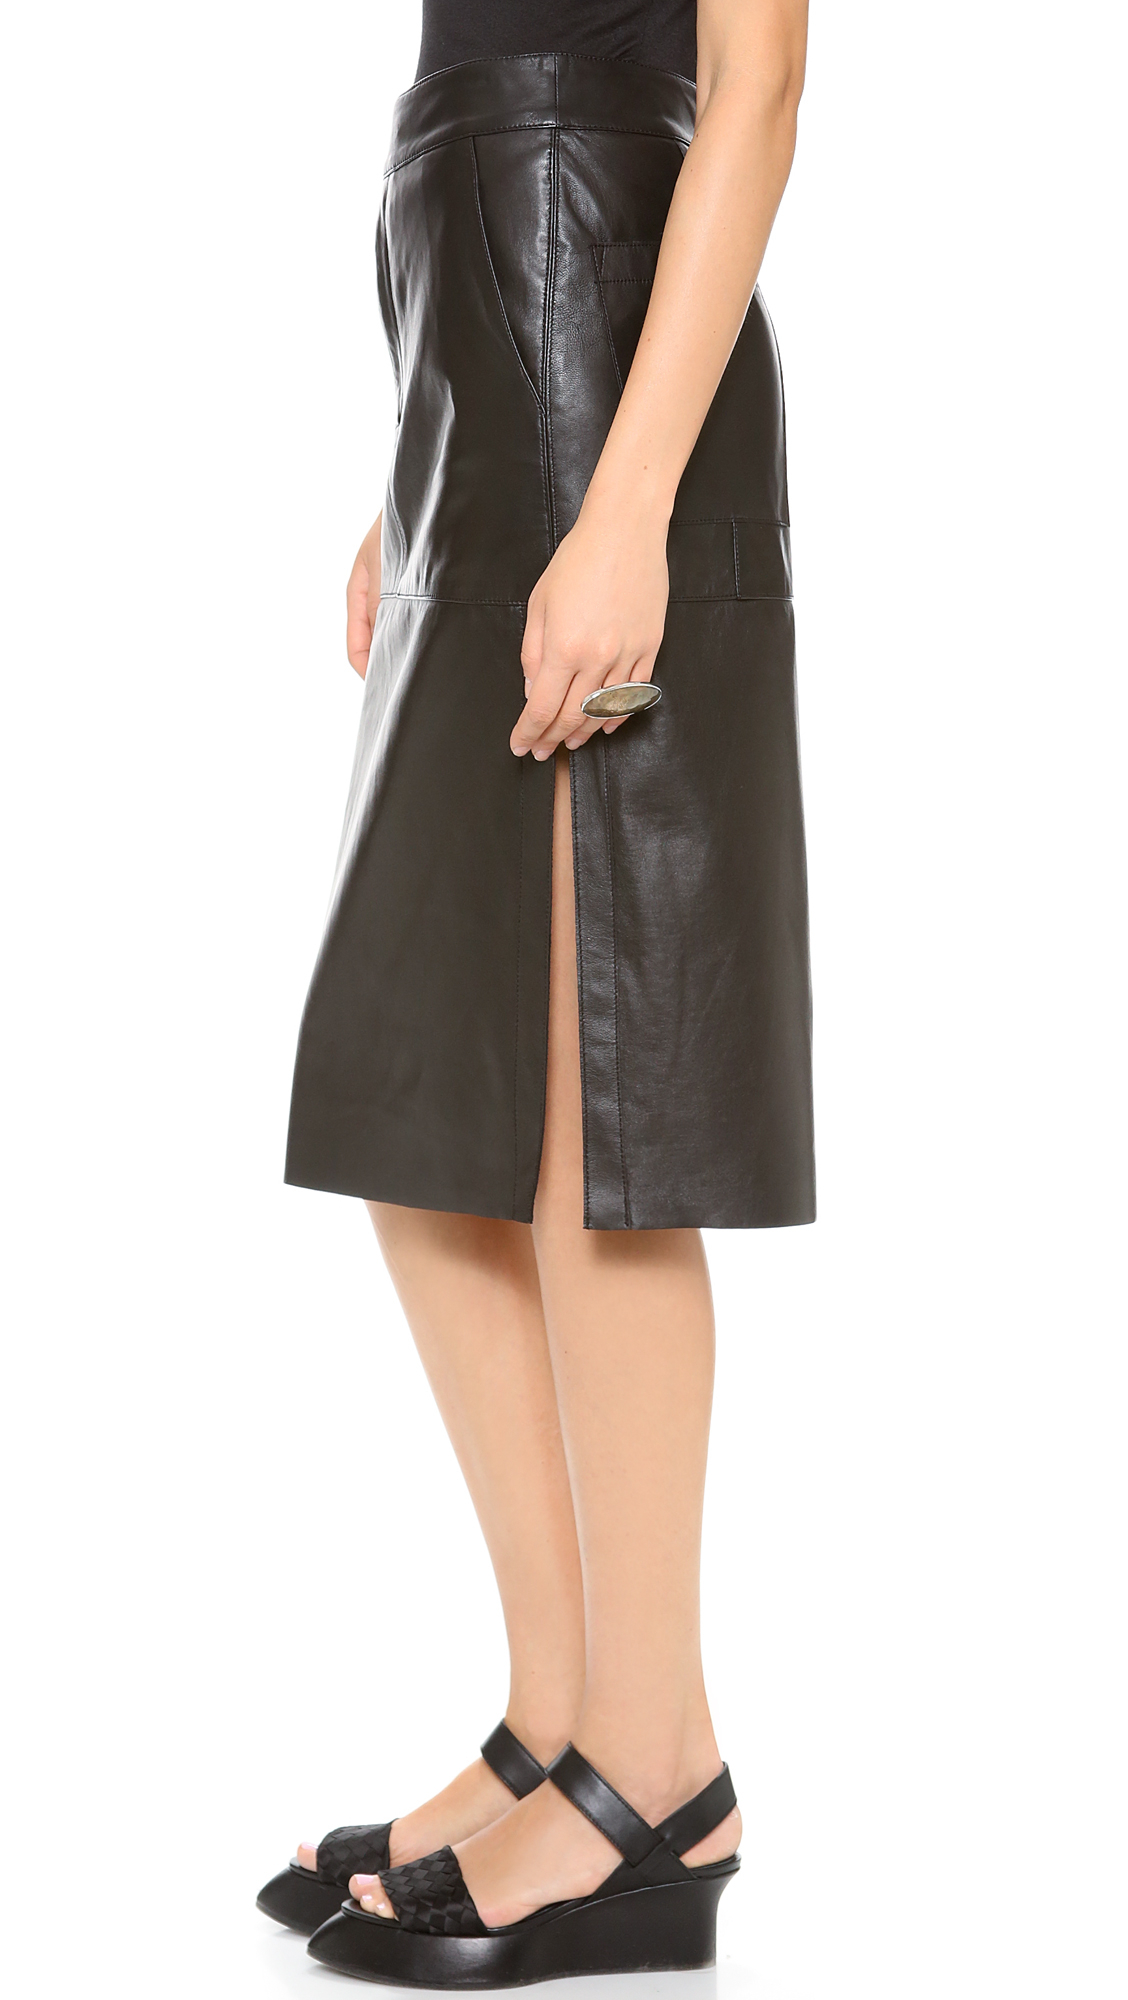 Helmut lang High Waisted Leather Skirt in Black | Lyst